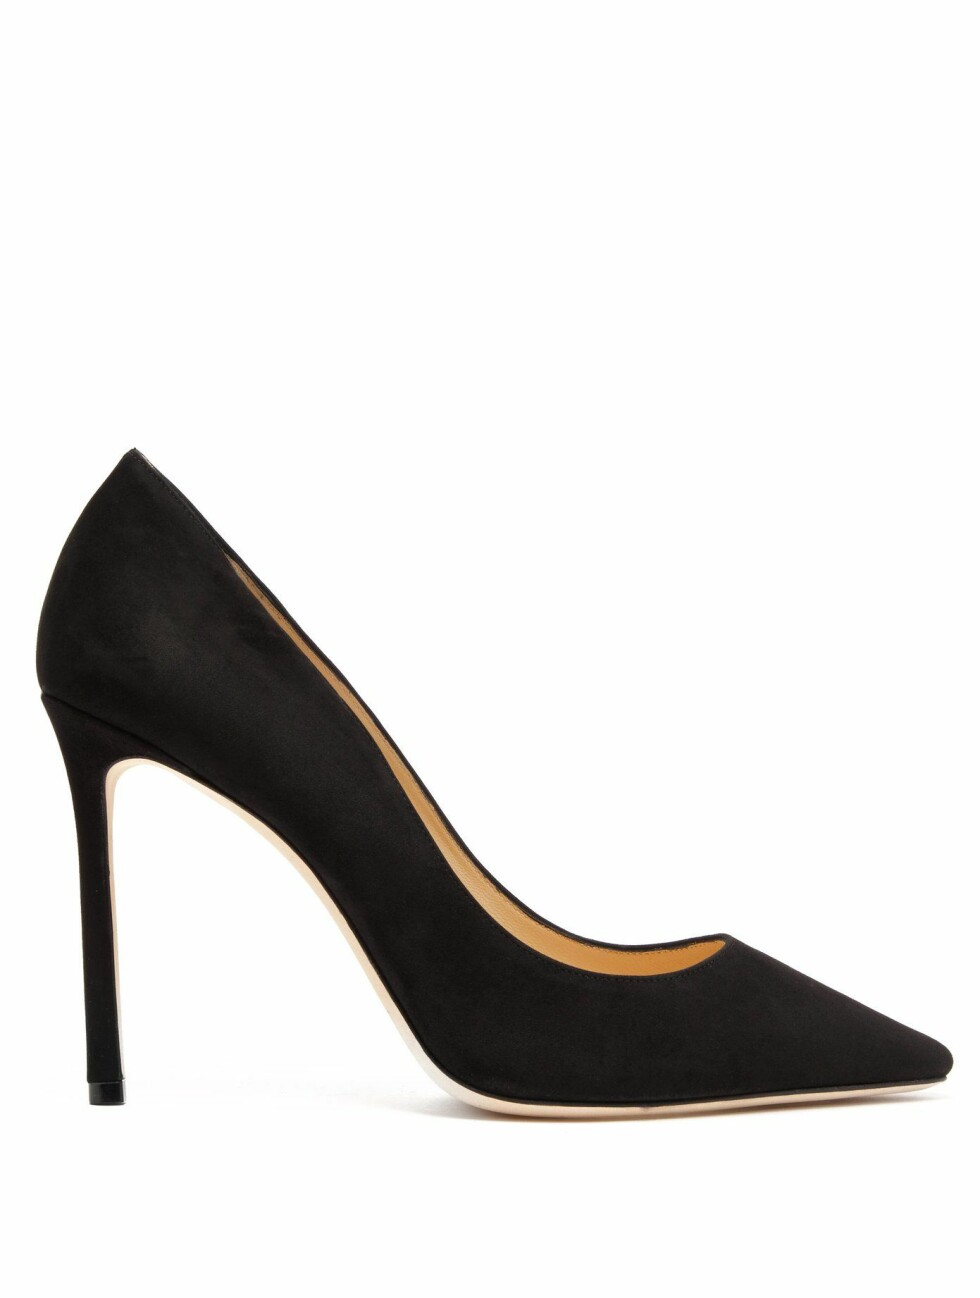 <strong>Sko fra Jimmy Choo |4005,-| https:</strong>//www.matchesfashion.com/intl/products/Jimmy-Choo-Romy-100-suede-pumps-1209182